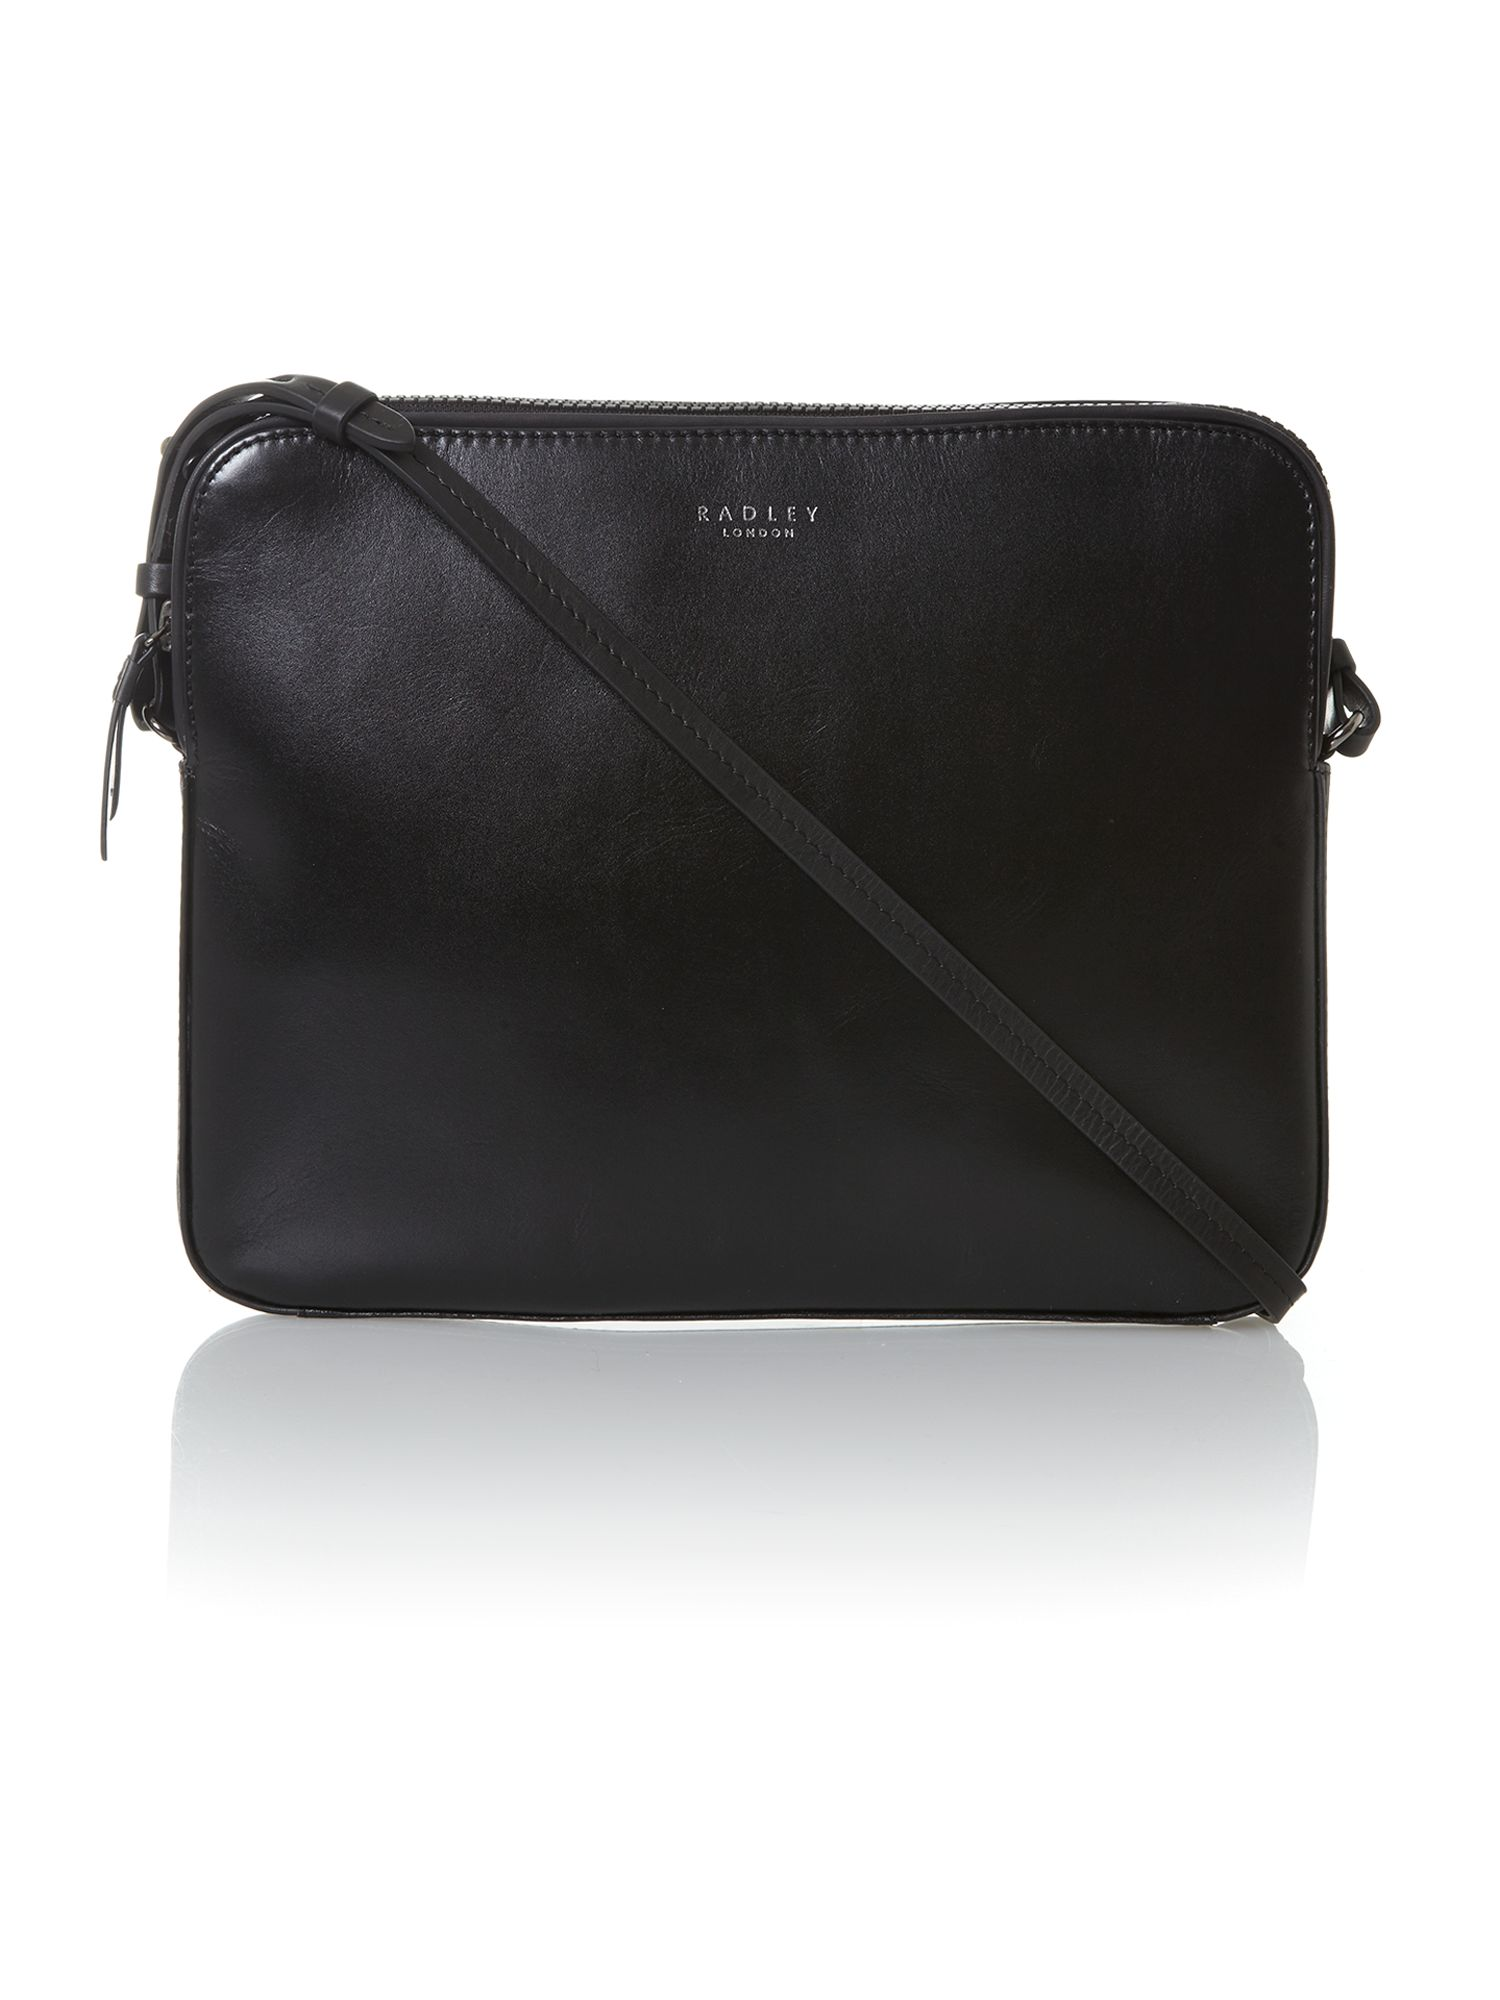 Malton medium flat xbody bag